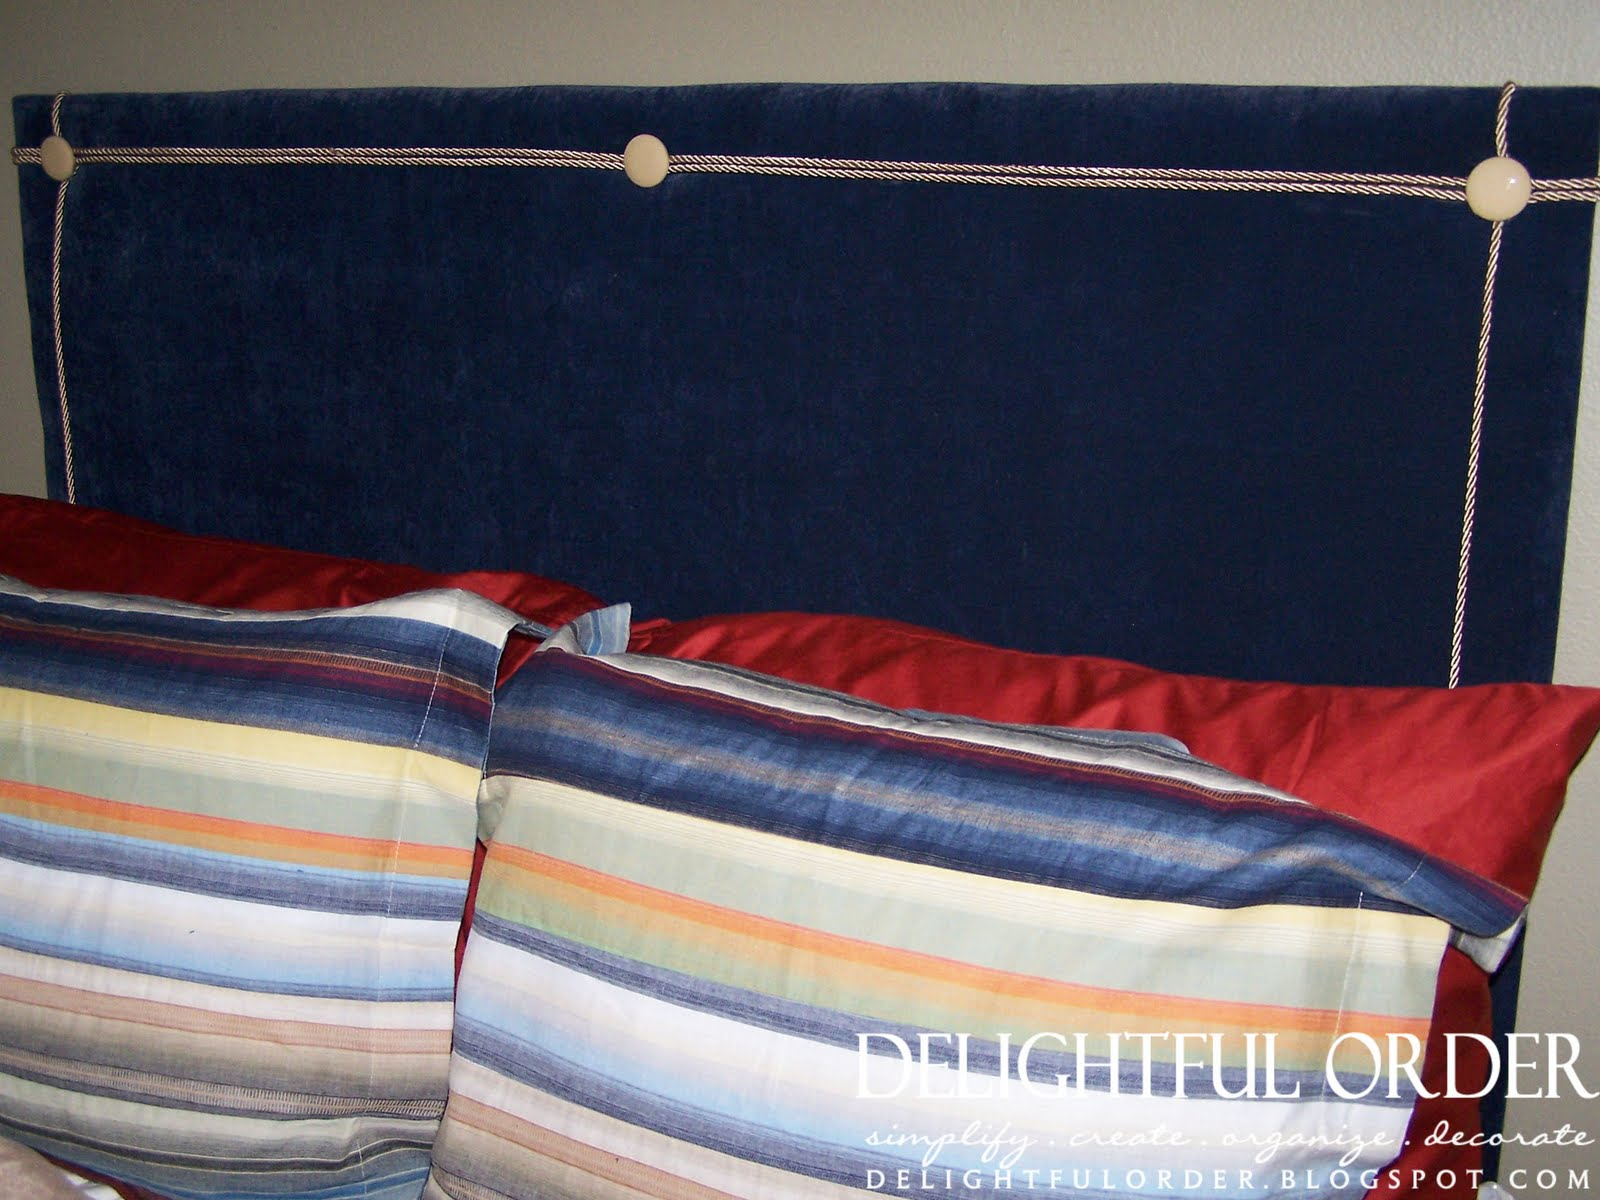 Delightful order make your own headboard Make your own headboard